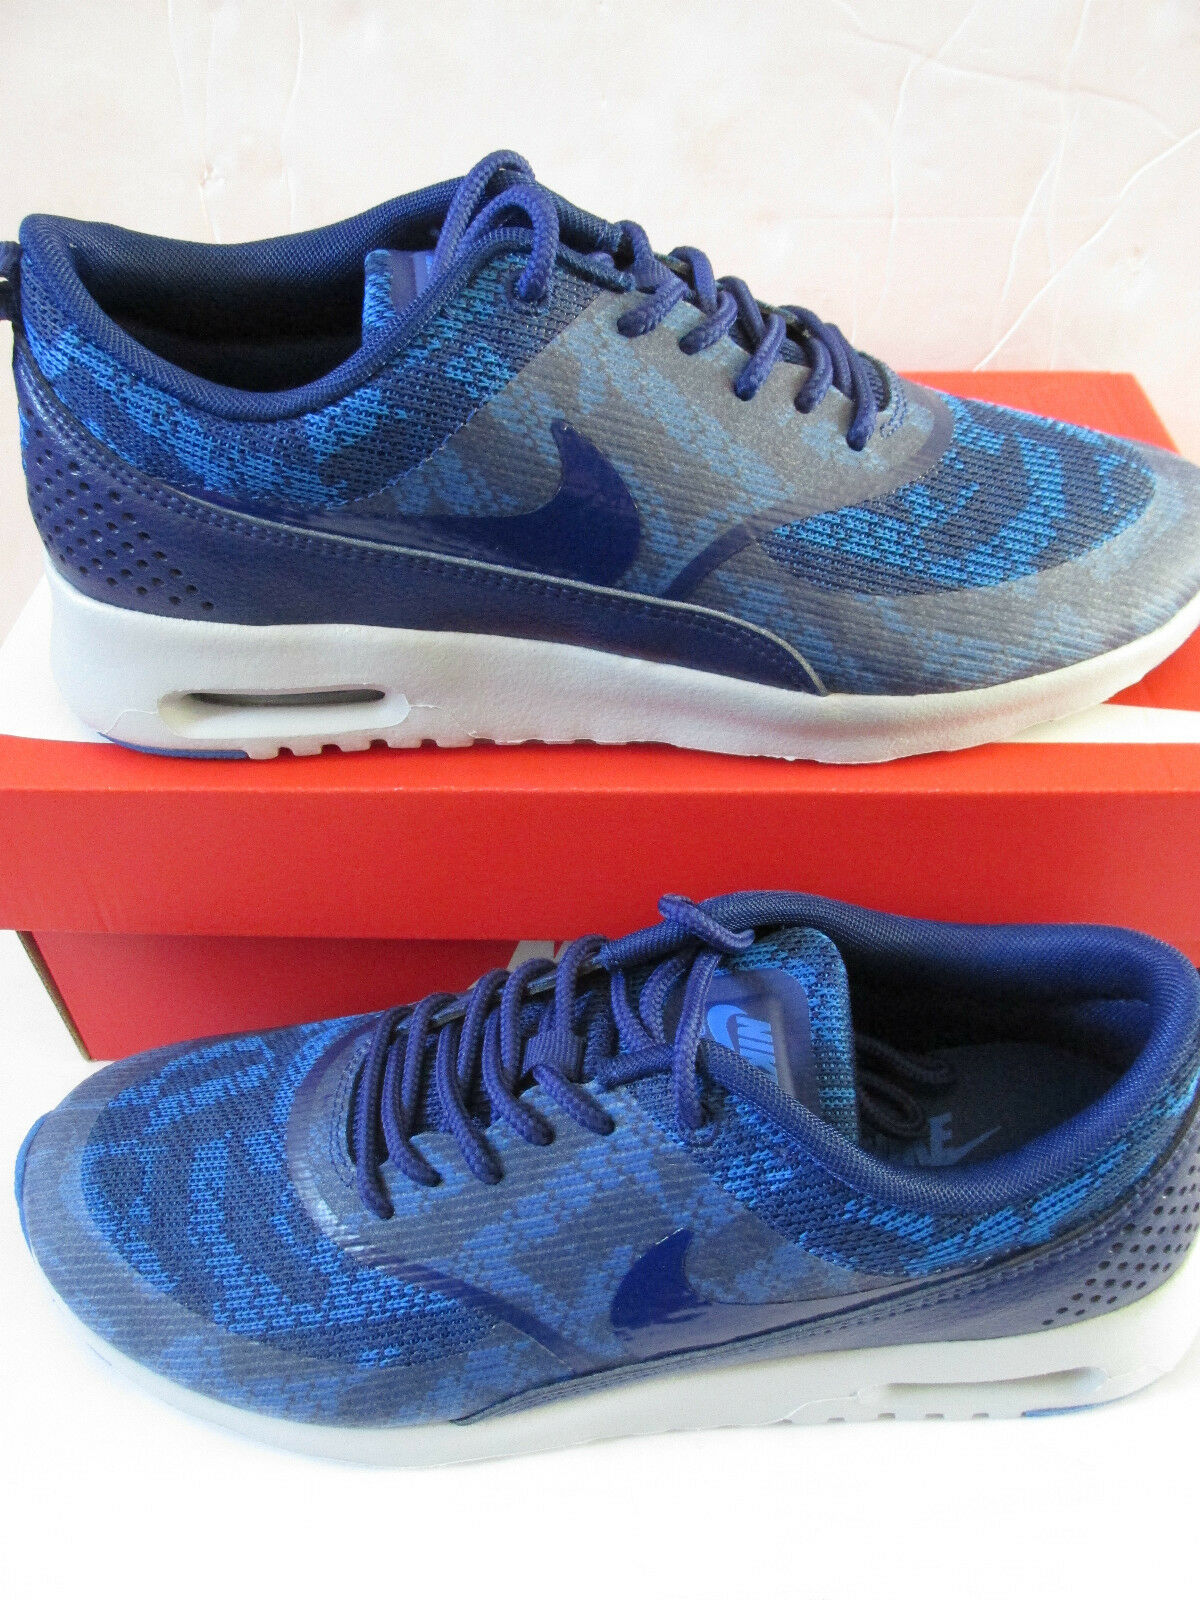 nike  Femme  air max thea JRCRD fonctionnement trainers 718646 401 sneakers  chaussures